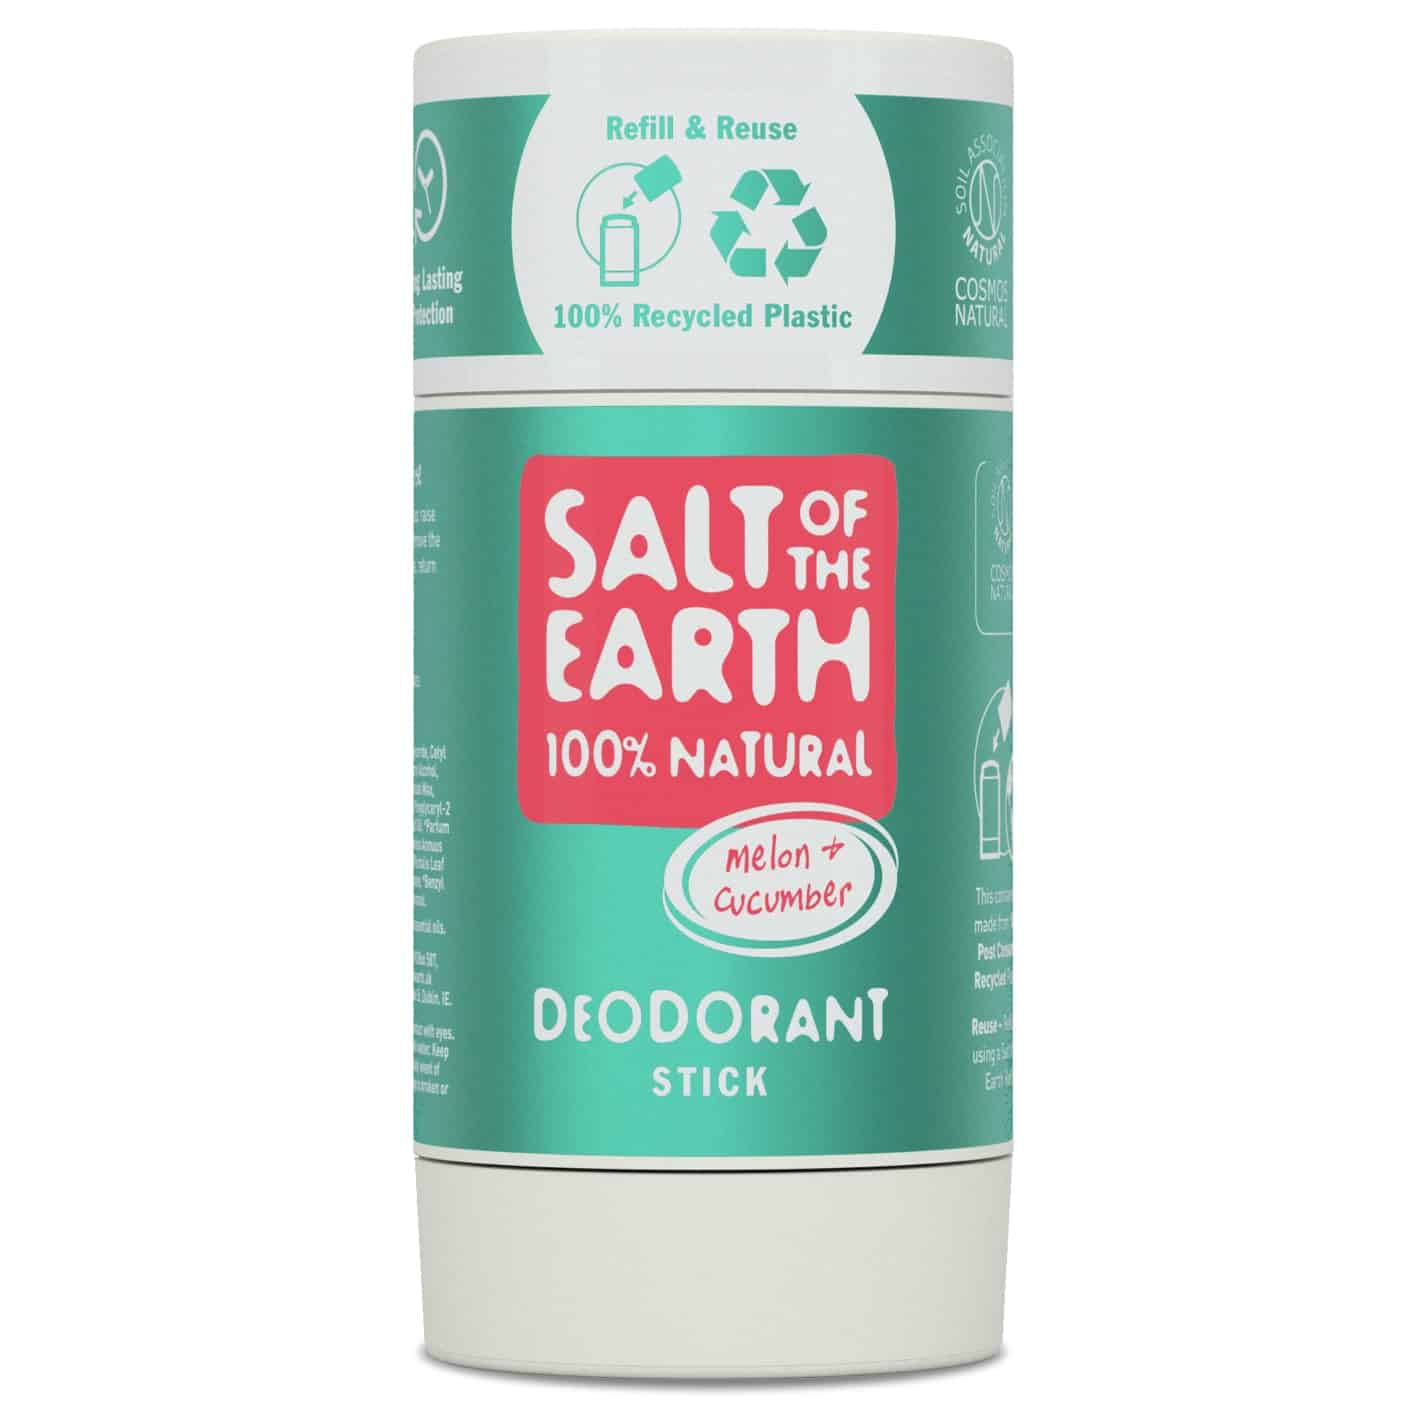 Natural-deodorant-stick-melon-cucumber-salt-of-the-earth-front